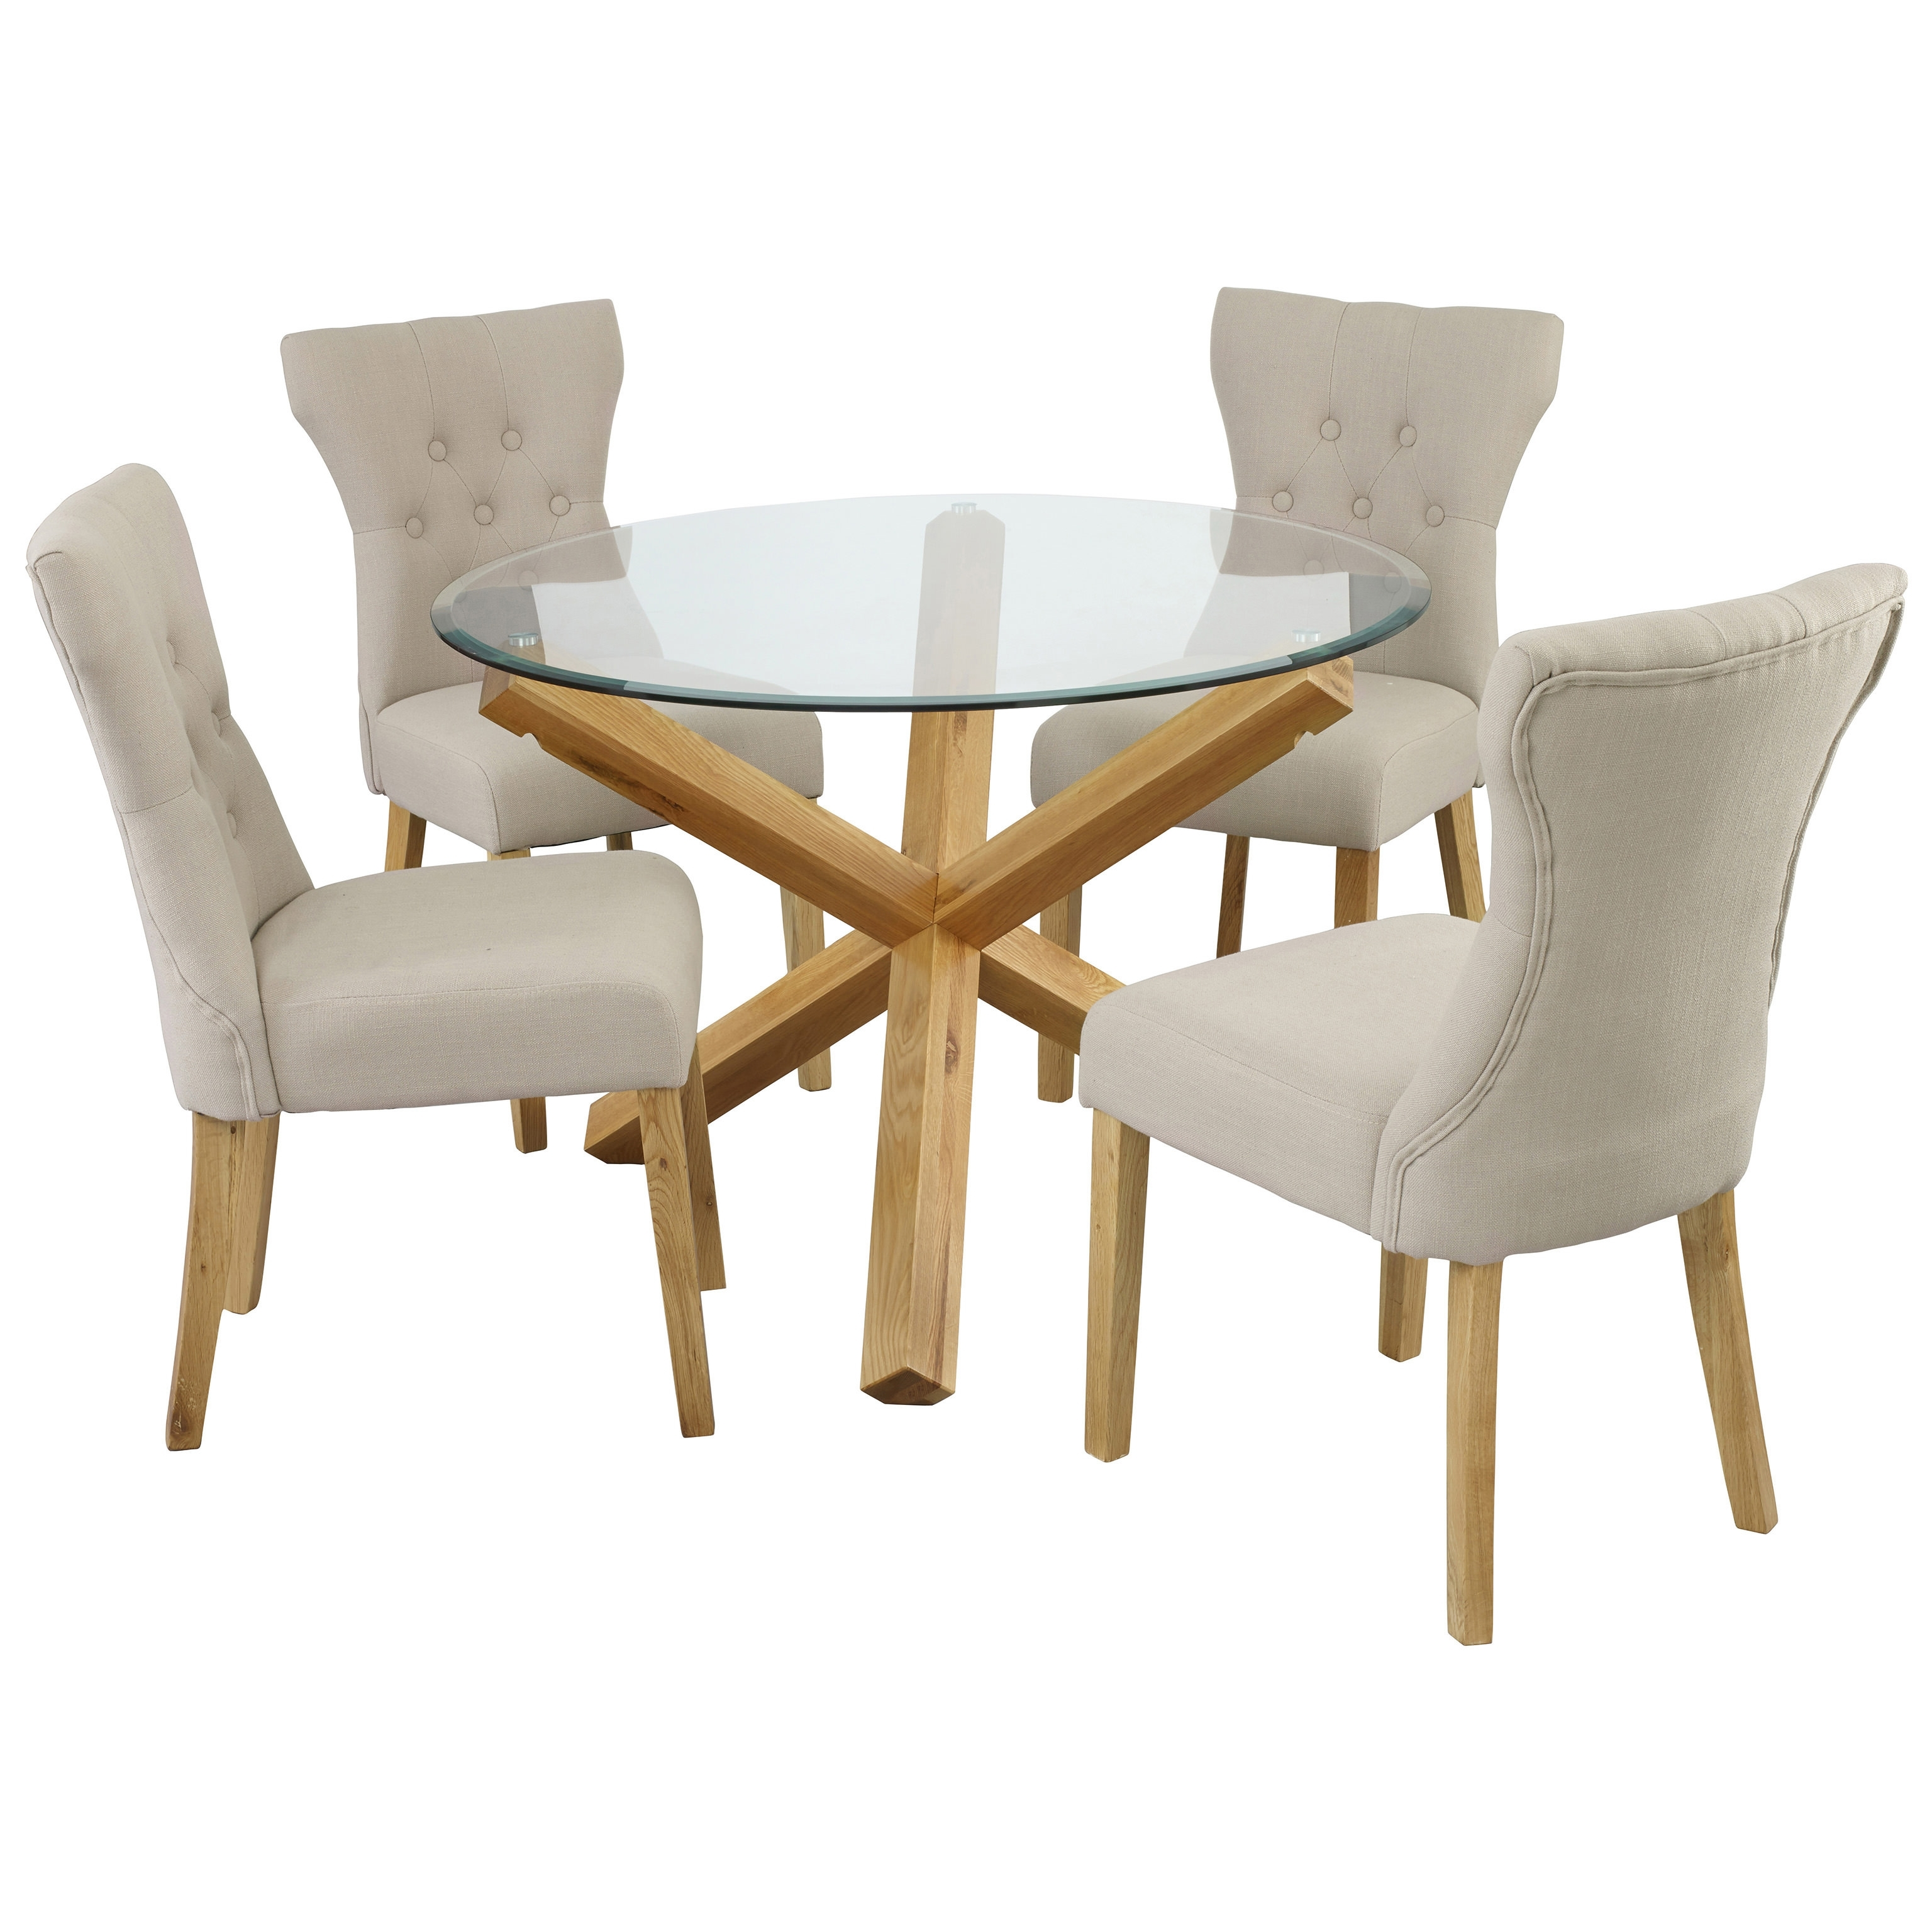 Fashionable Oak & Glass Round Dining Table And Chair Set With 4 Fabric Seats In Glass Dining Tables With Oak Legs (View 6 of 25)